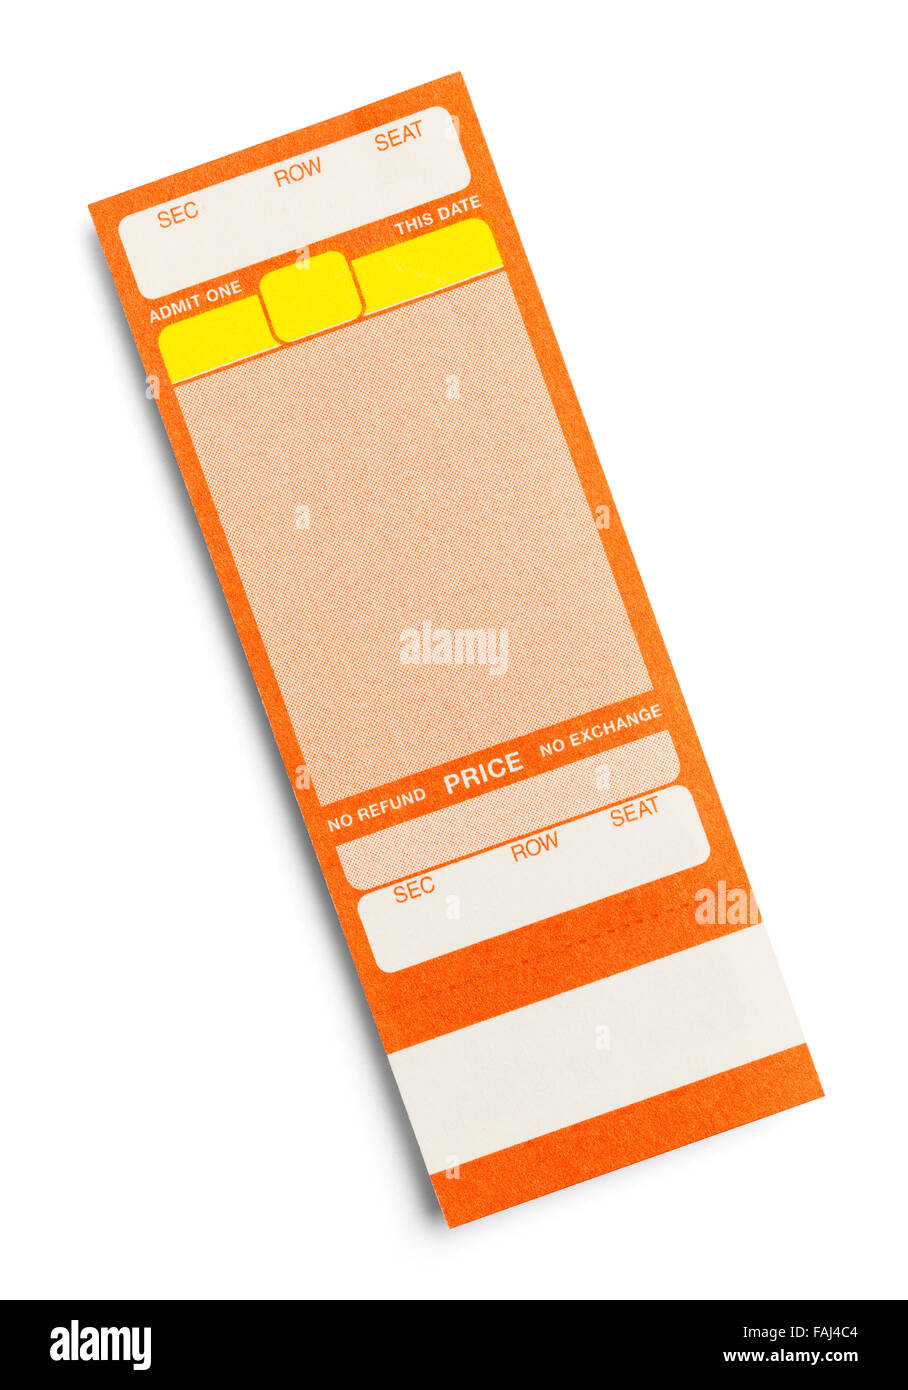 Orange Event Ticket With Copy Space Isolated on a White Background. - Stock Image